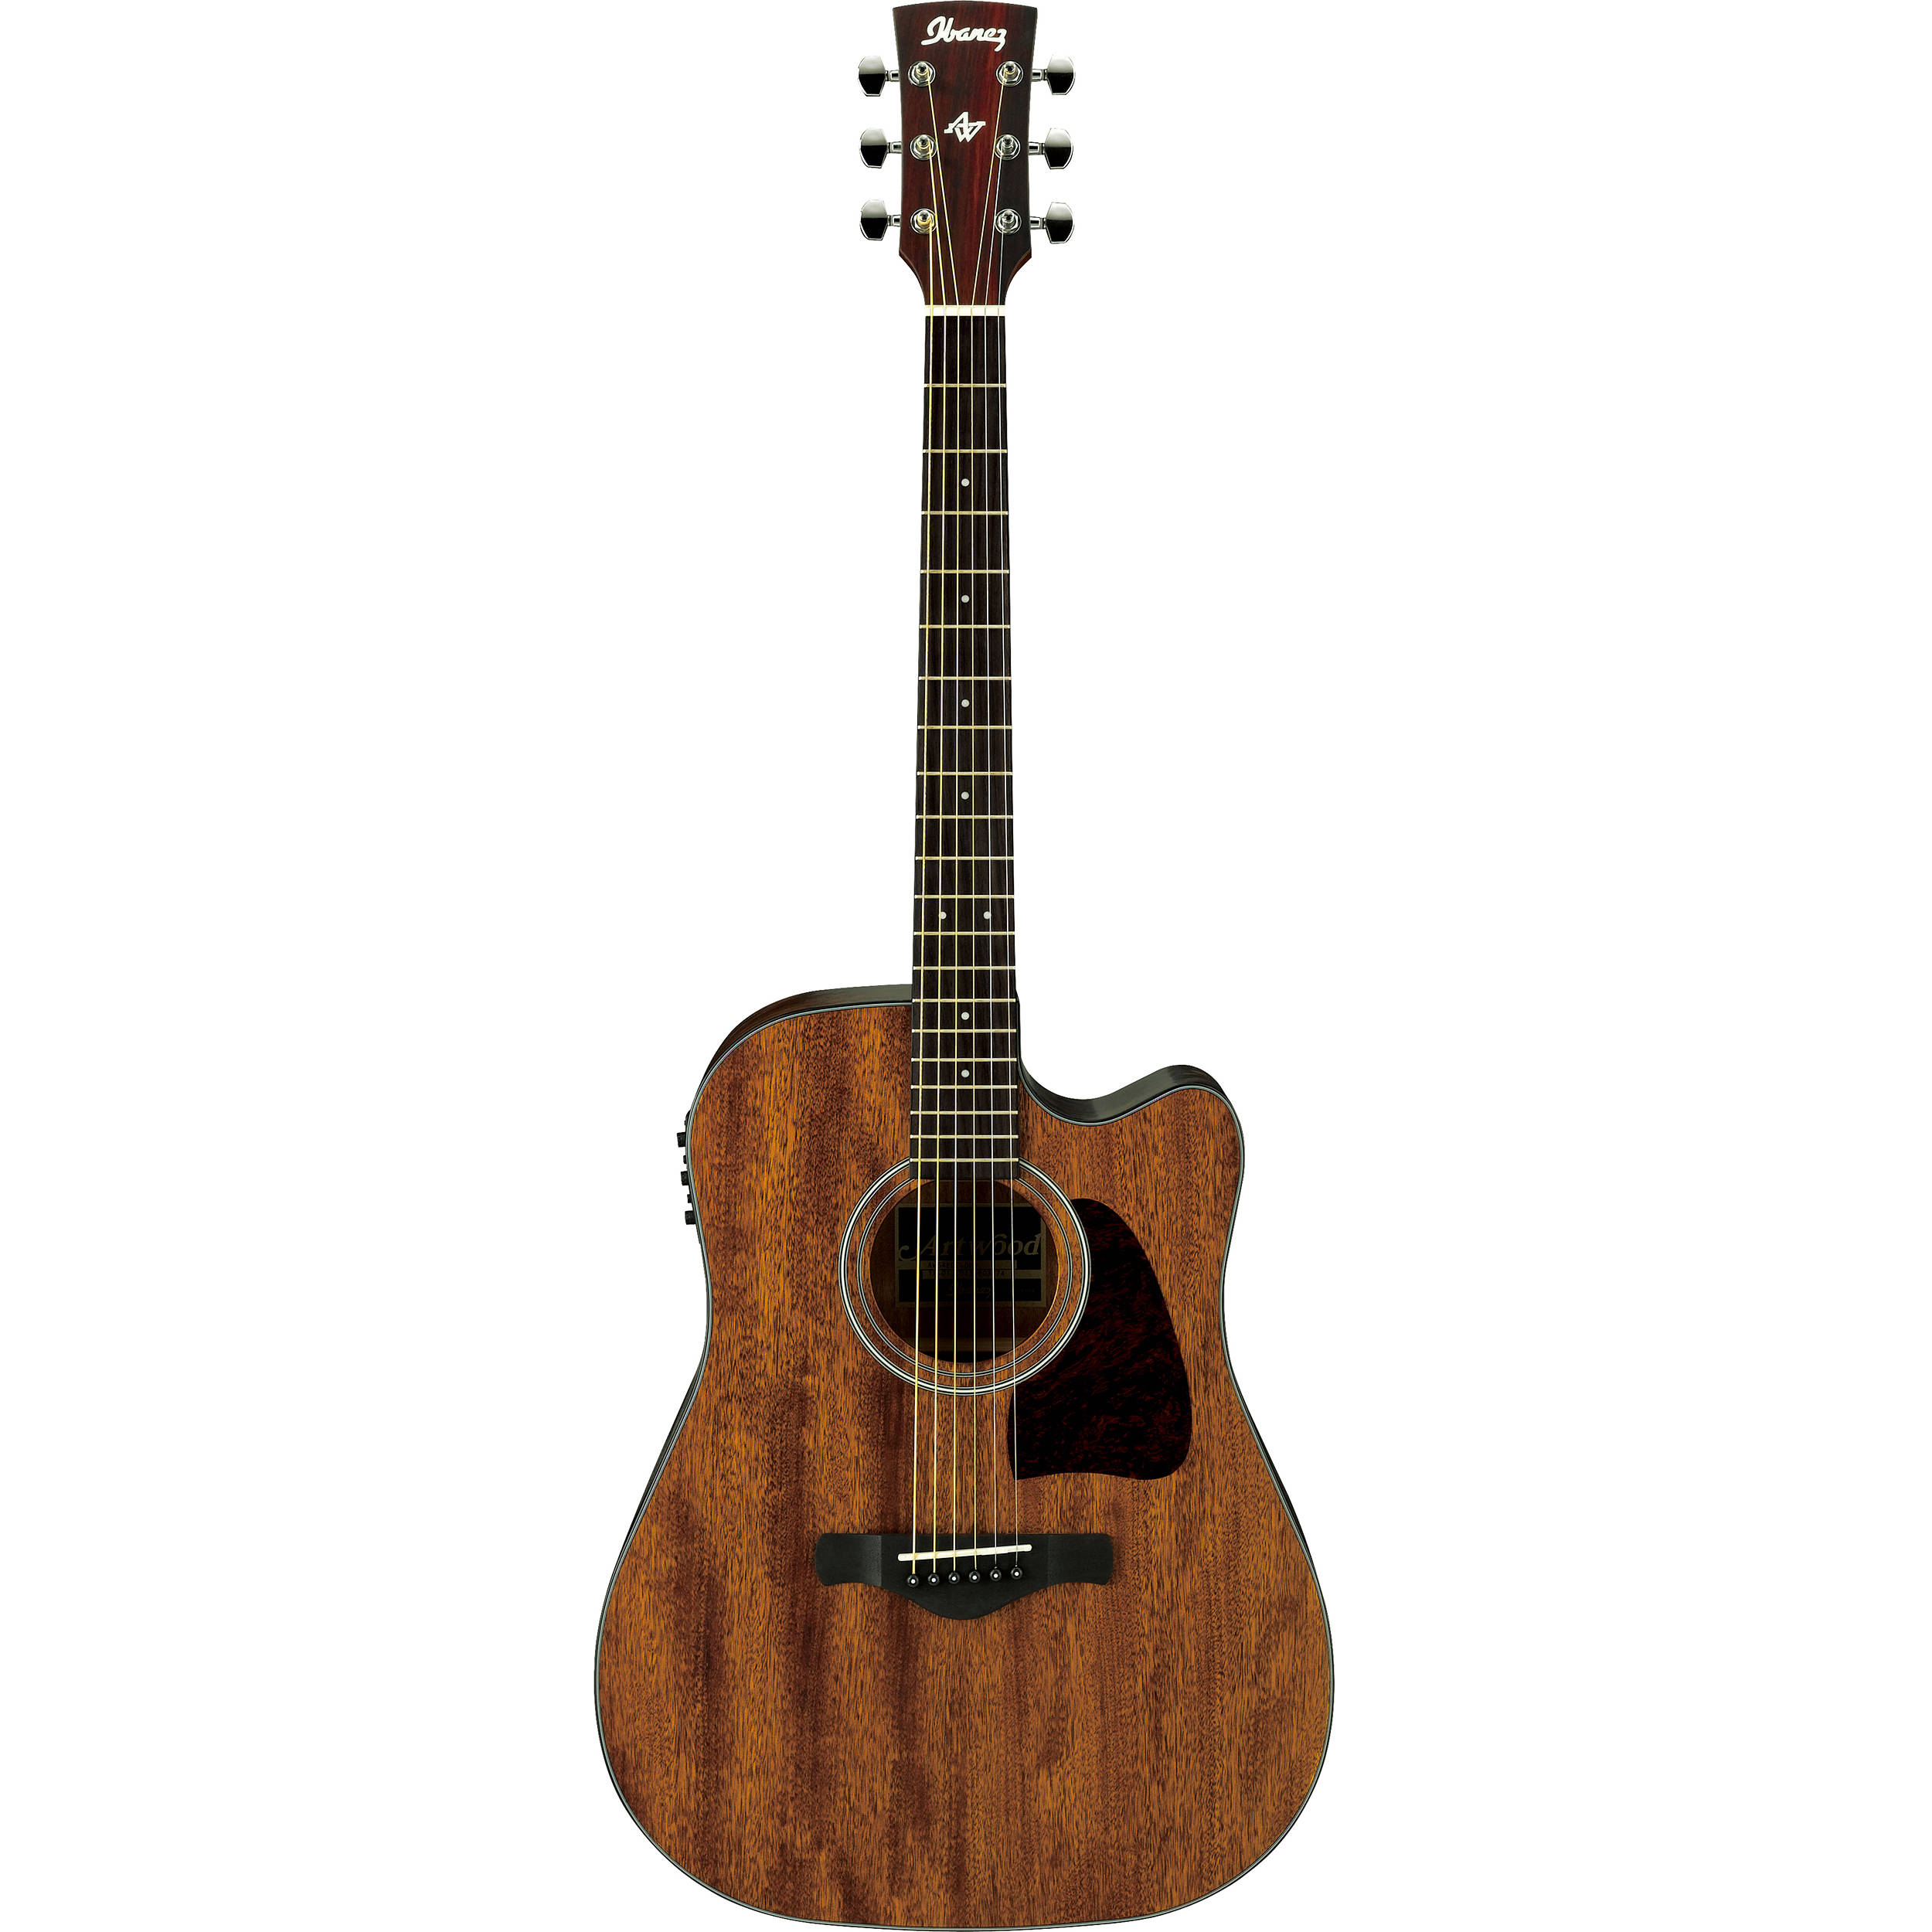 ibanez aw54ce artwood series acoustic electric guitar aw54ceopn. Black Bedroom Furniture Sets. Home Design Ideas